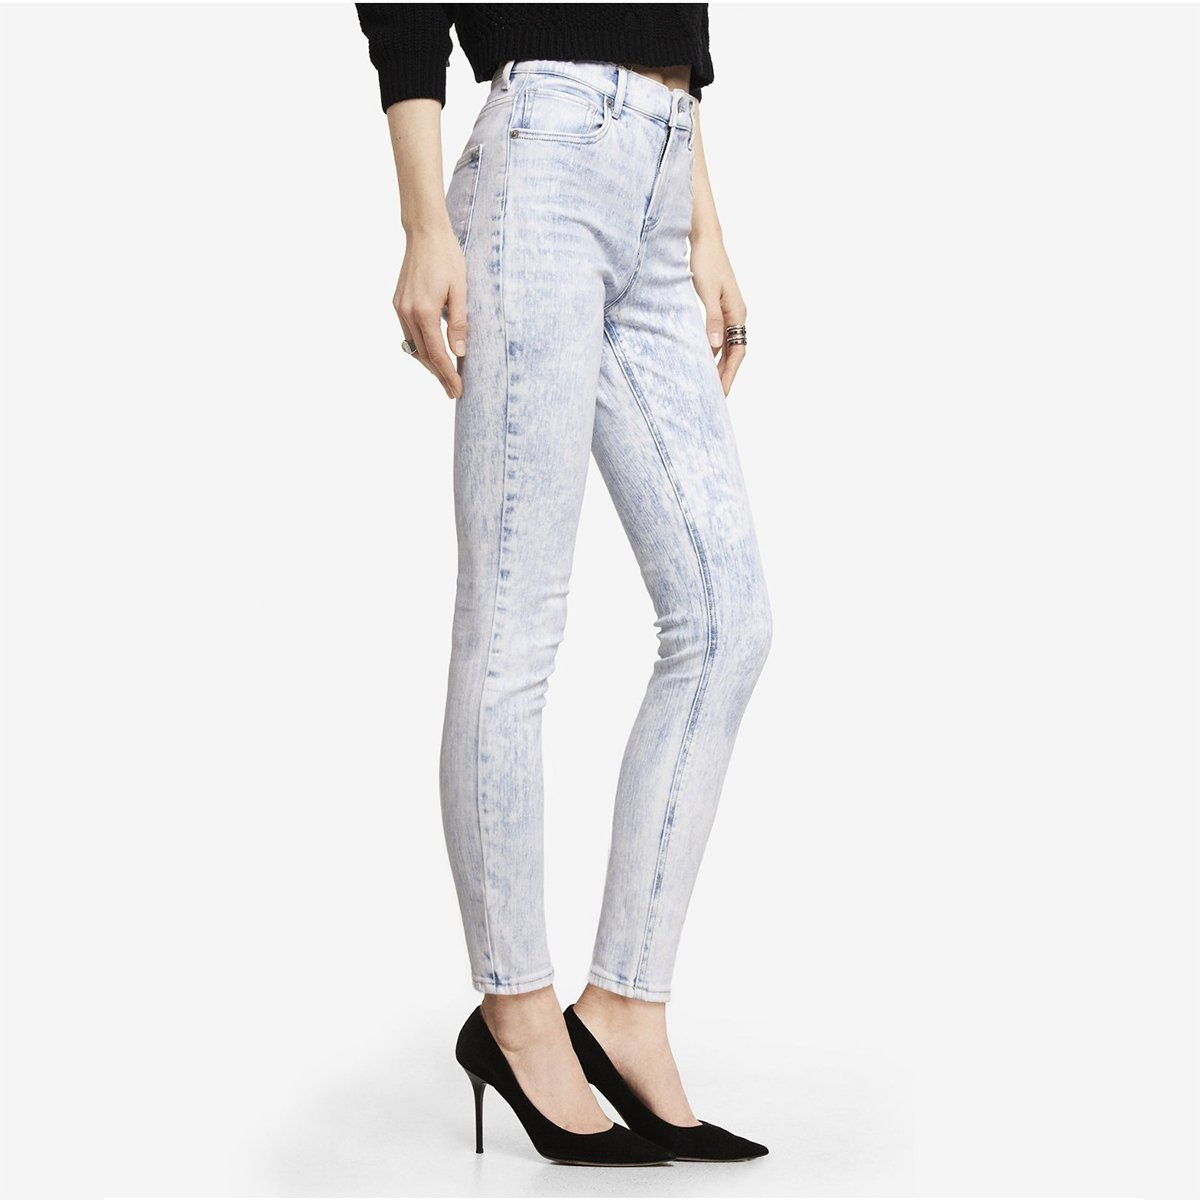 Express Women's Acid Wash Slim Fit Denim Women's Denim SRK 24 27